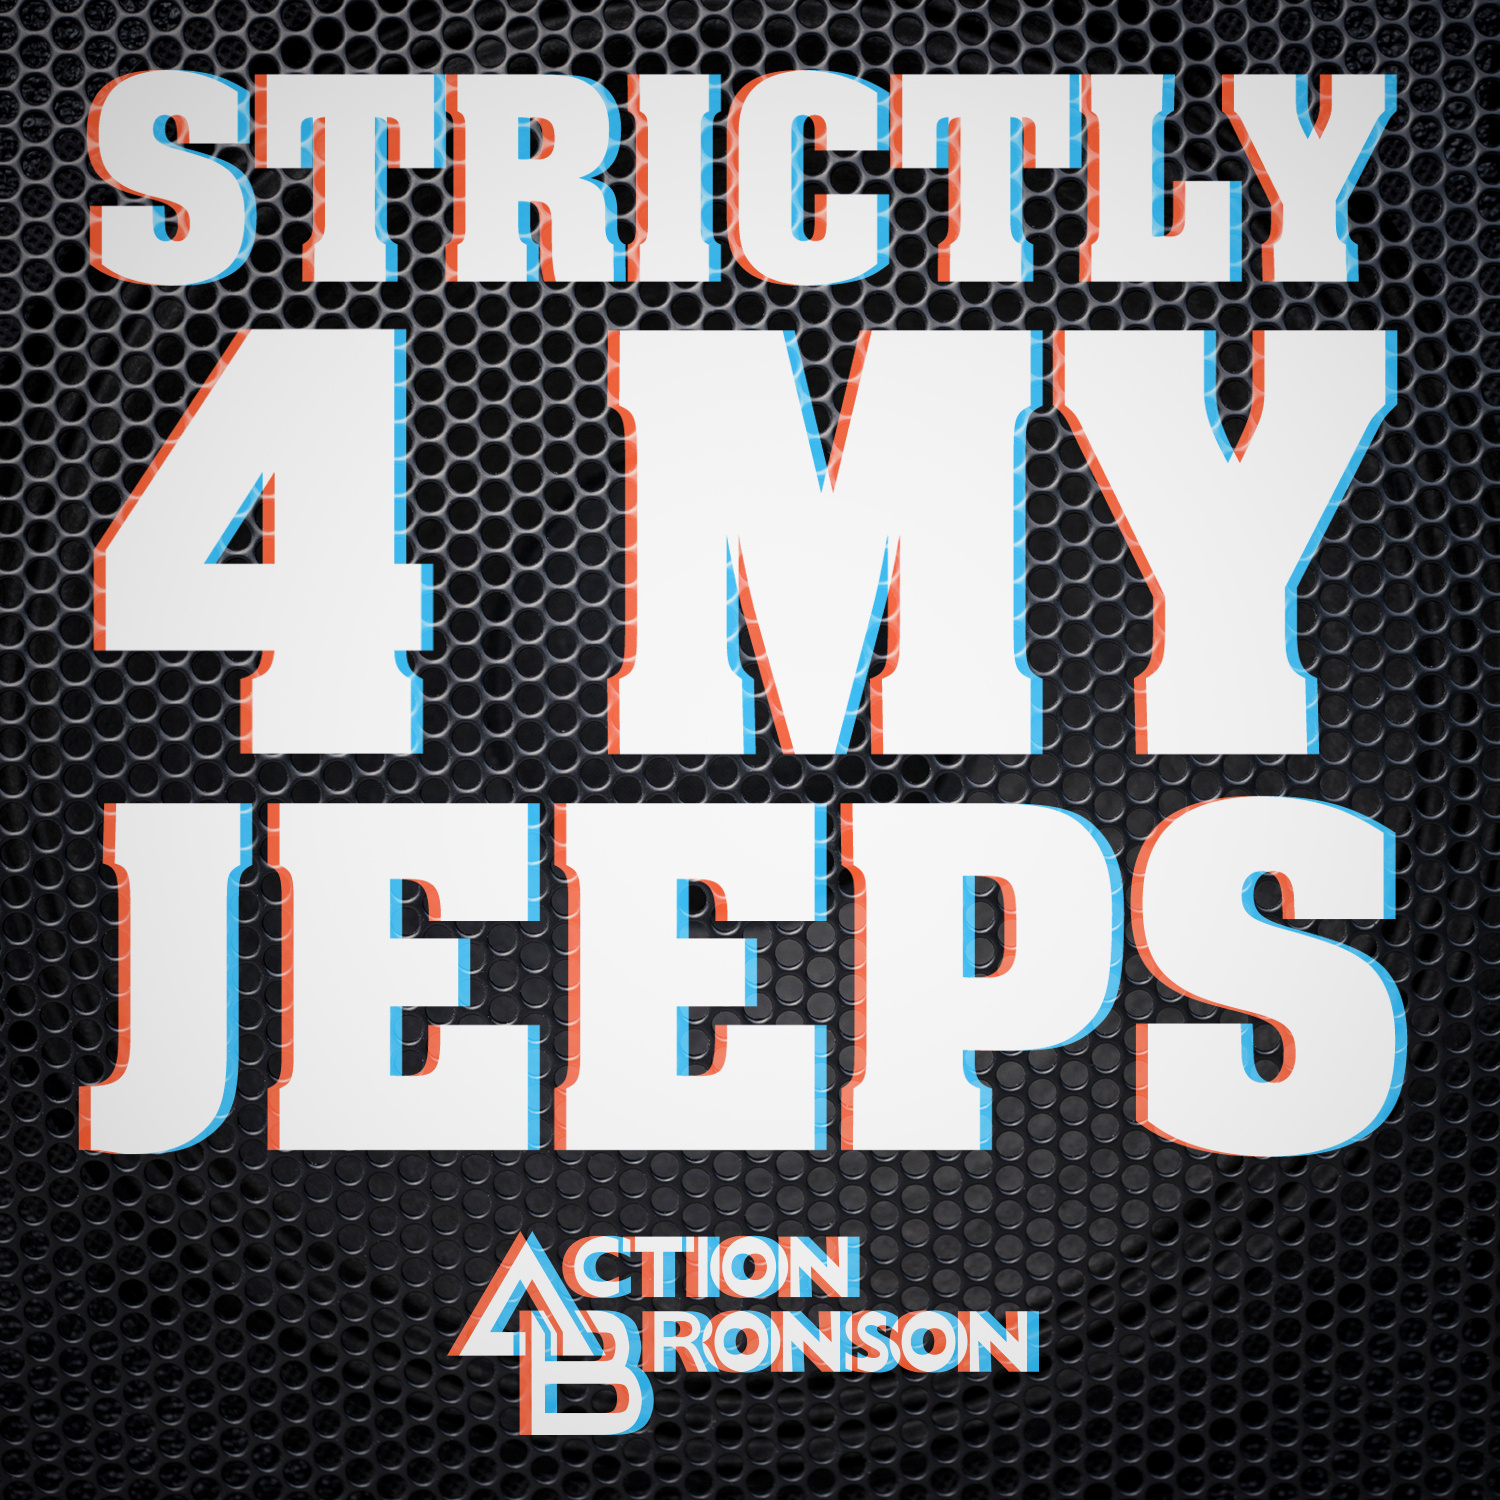 action bronson strictly 4 my jeeps remix dirty